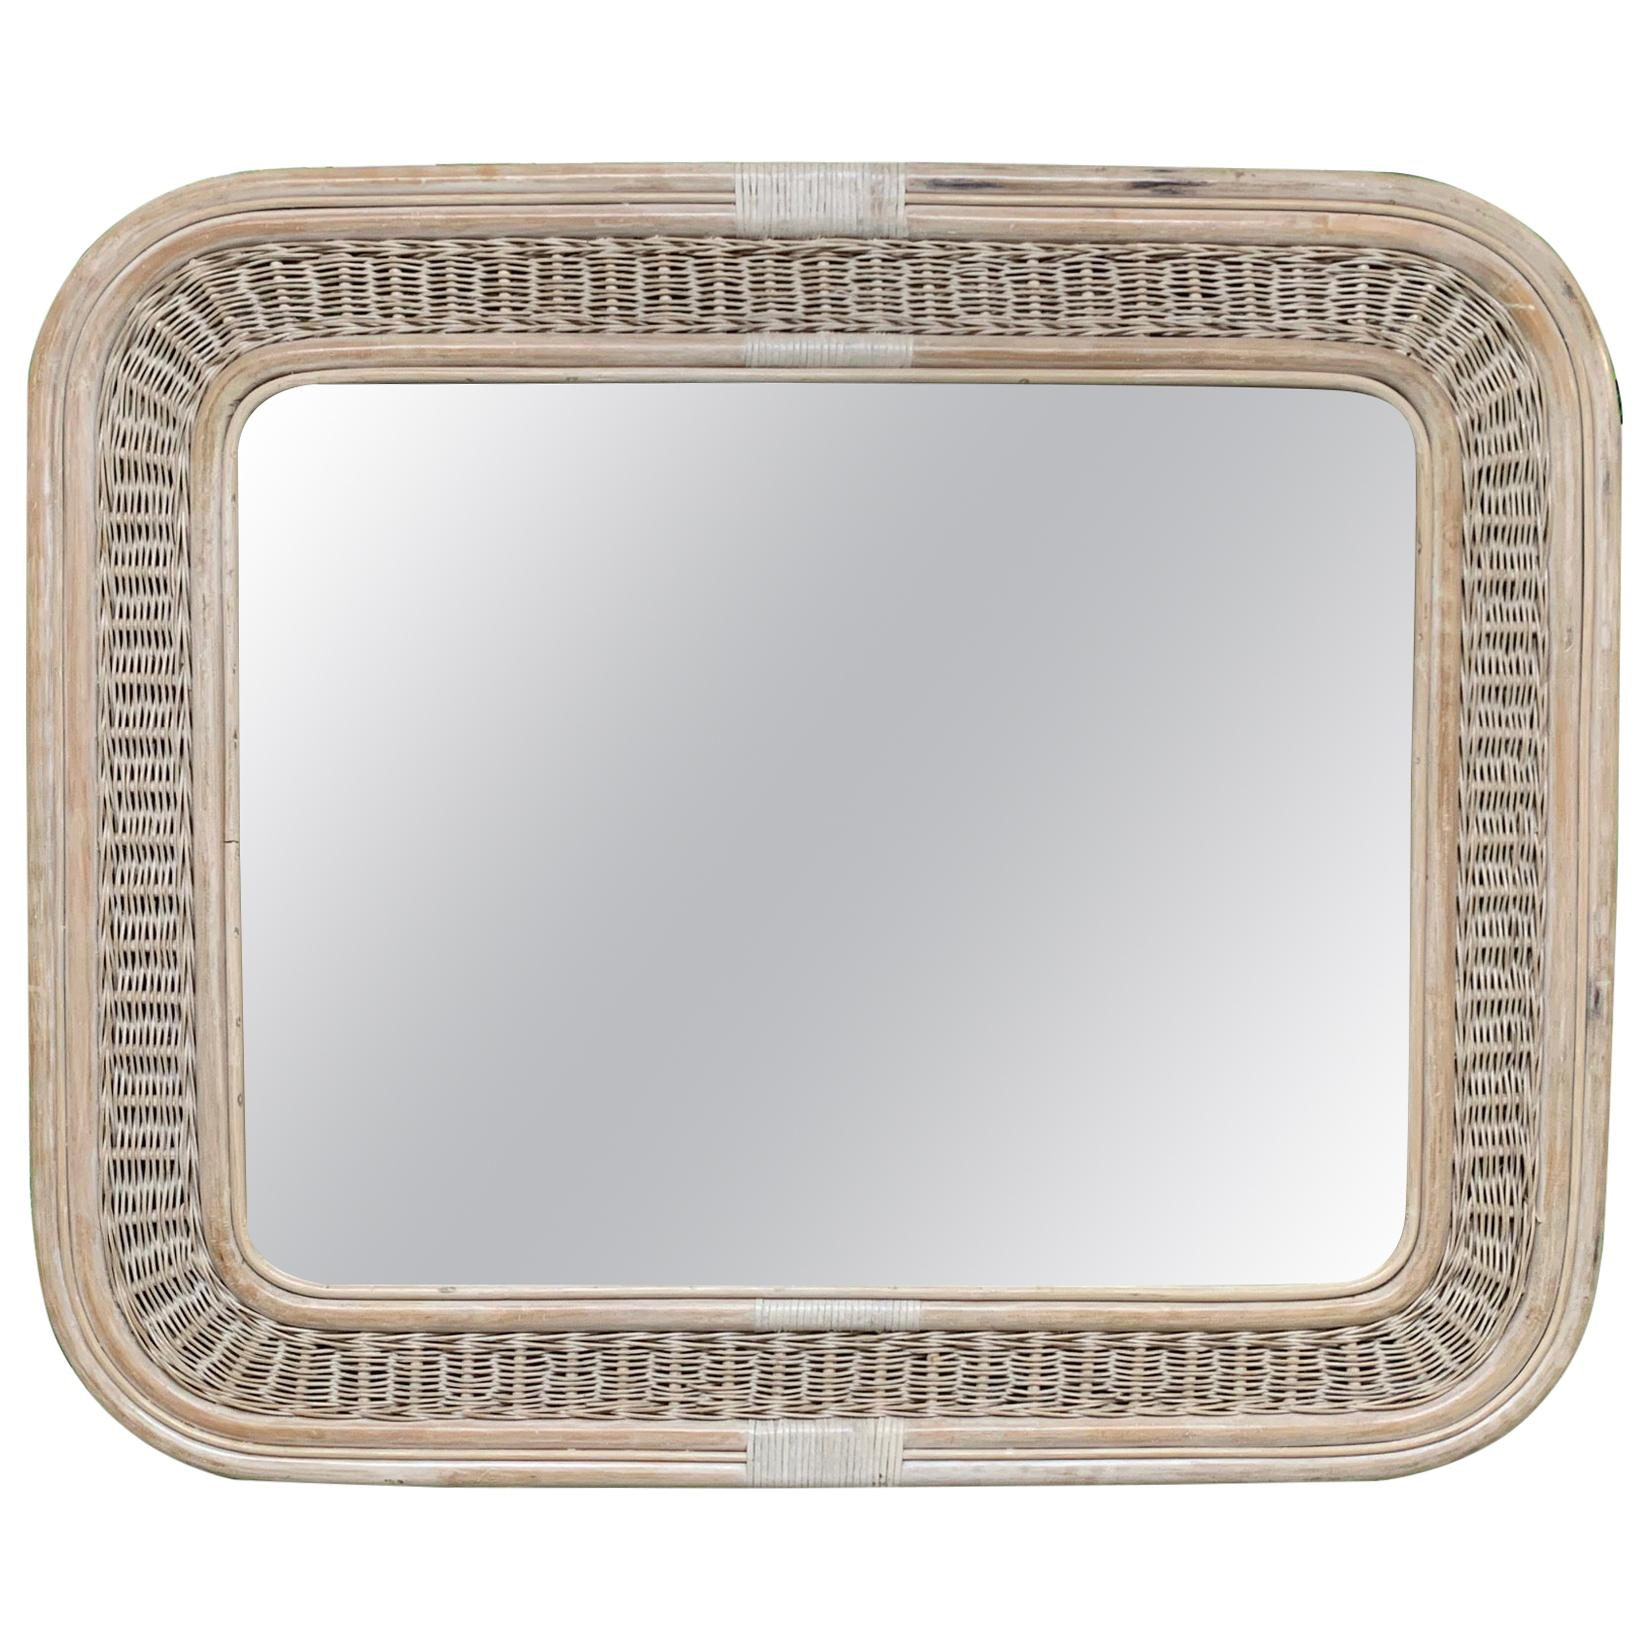 Rattan and Wicker Wall Mirror